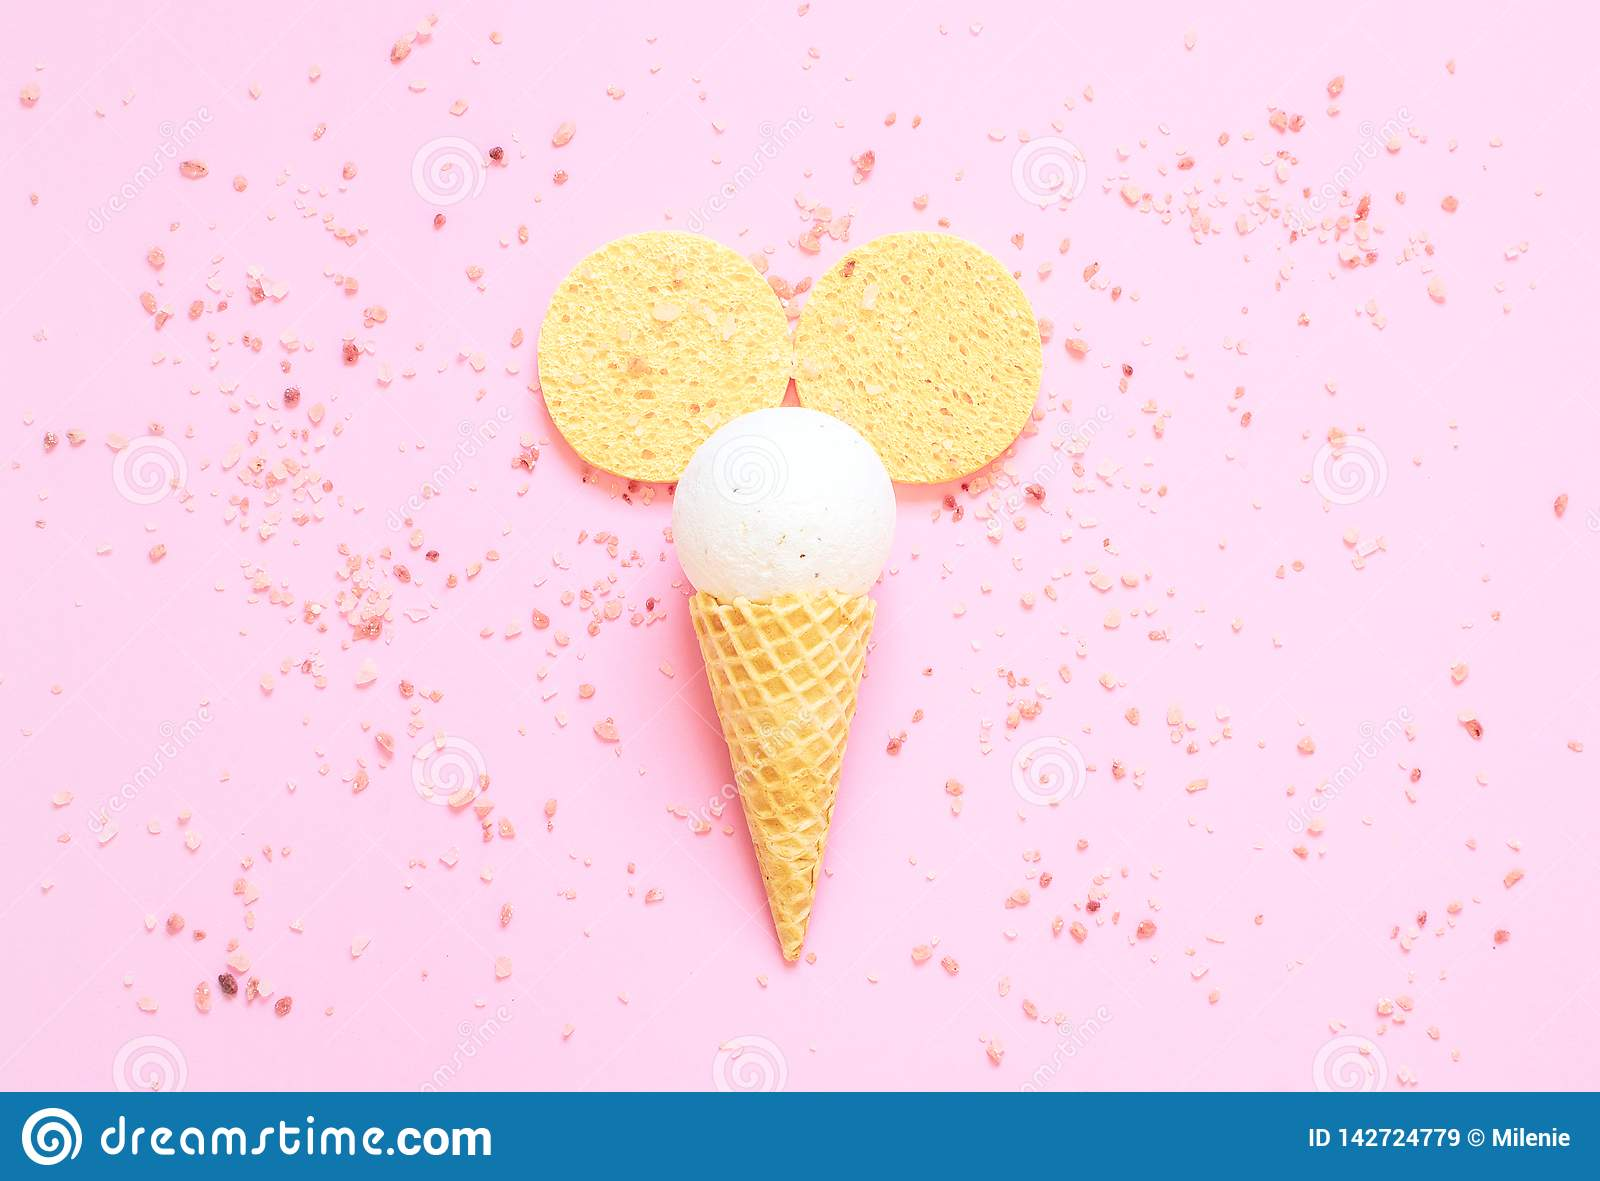 Composition of ice cream cone with bath ball on a light pink background